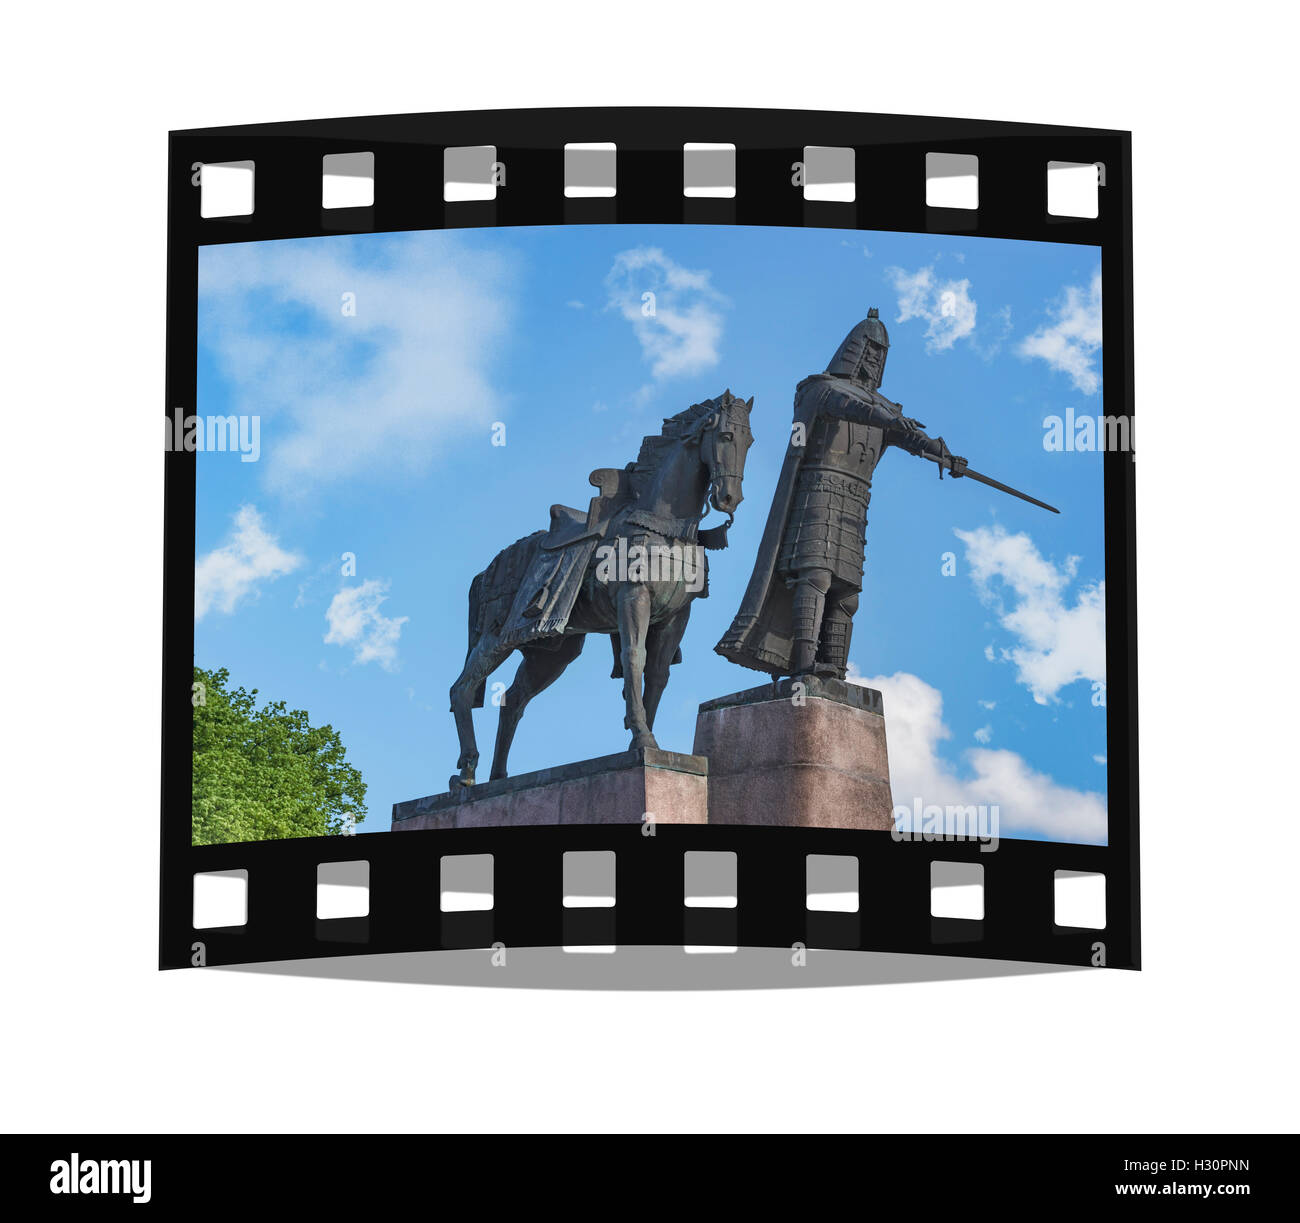 The monument of the Grand Duke of Lithuania Gediminas, one of the most famous rulers of old Lithuania, Vilnius, - Stock Image